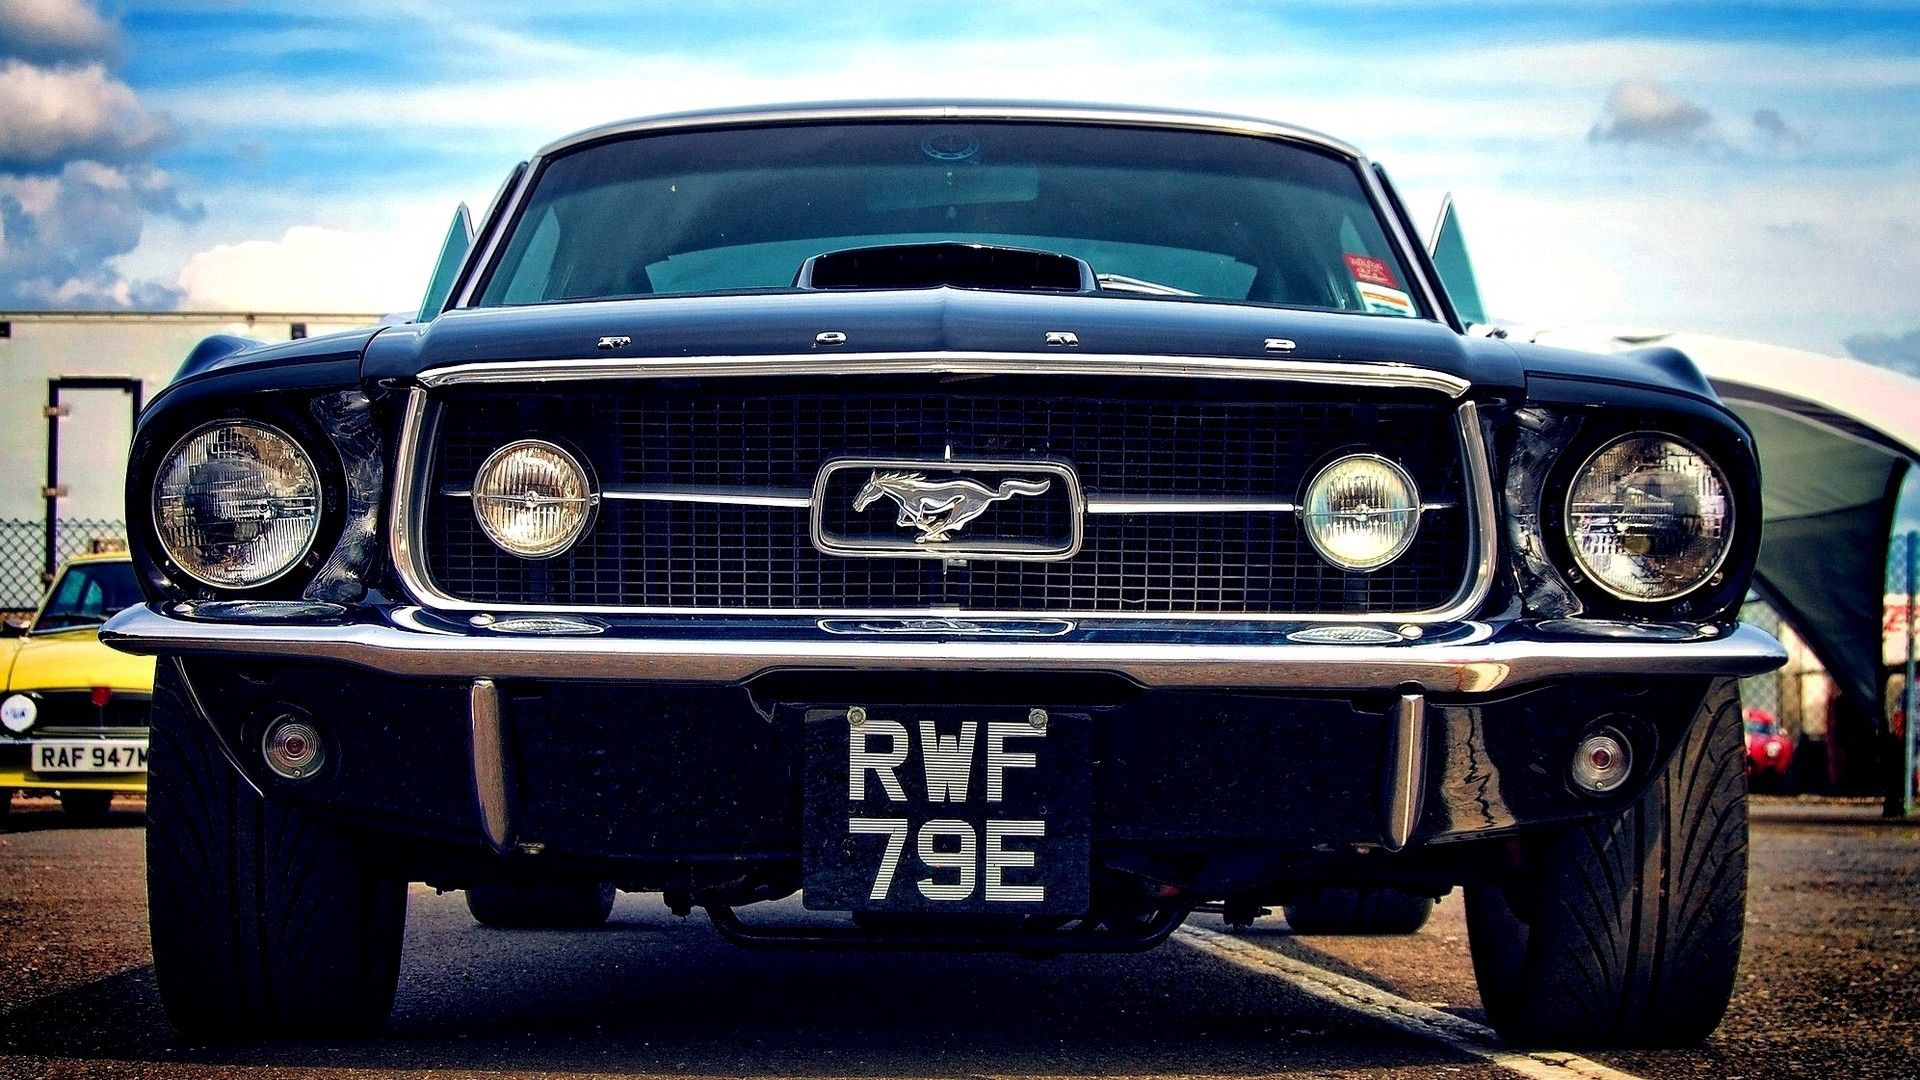 92593 download wallpaper Ford, Auto, Mustang, Cars, Style, Turbo screensavers and pictures for free